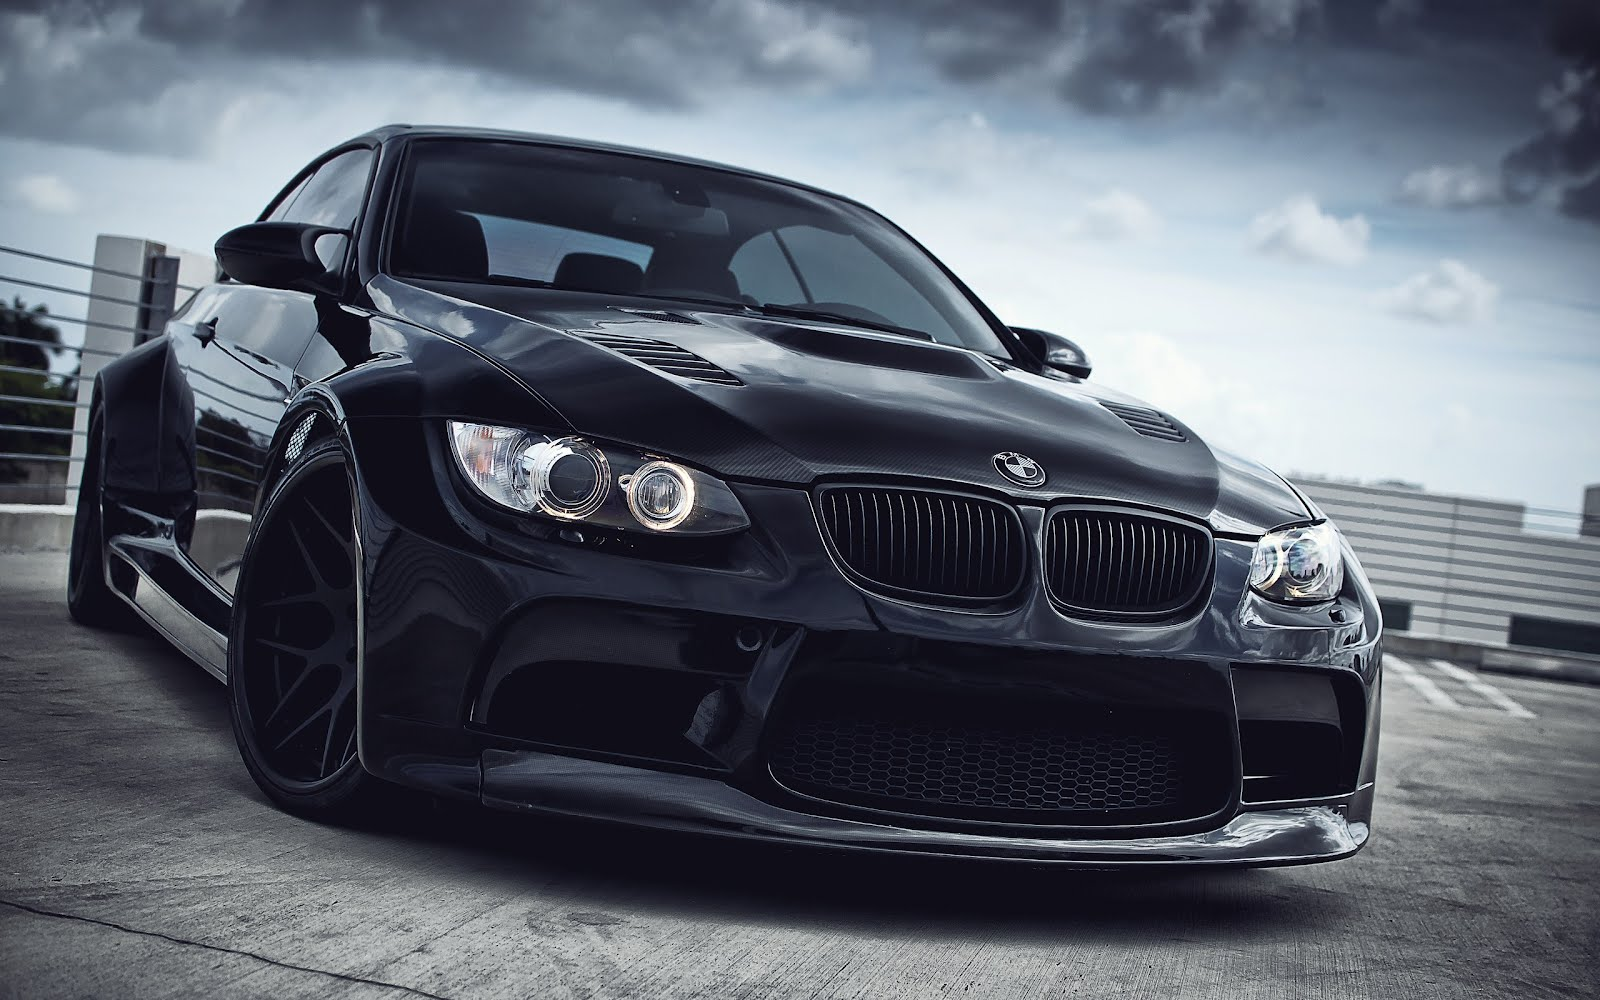 Http://4.bp.blogspot.com/ NAxoBe9R2rs/T41QK4The_I. Bmw M3 E93 ...